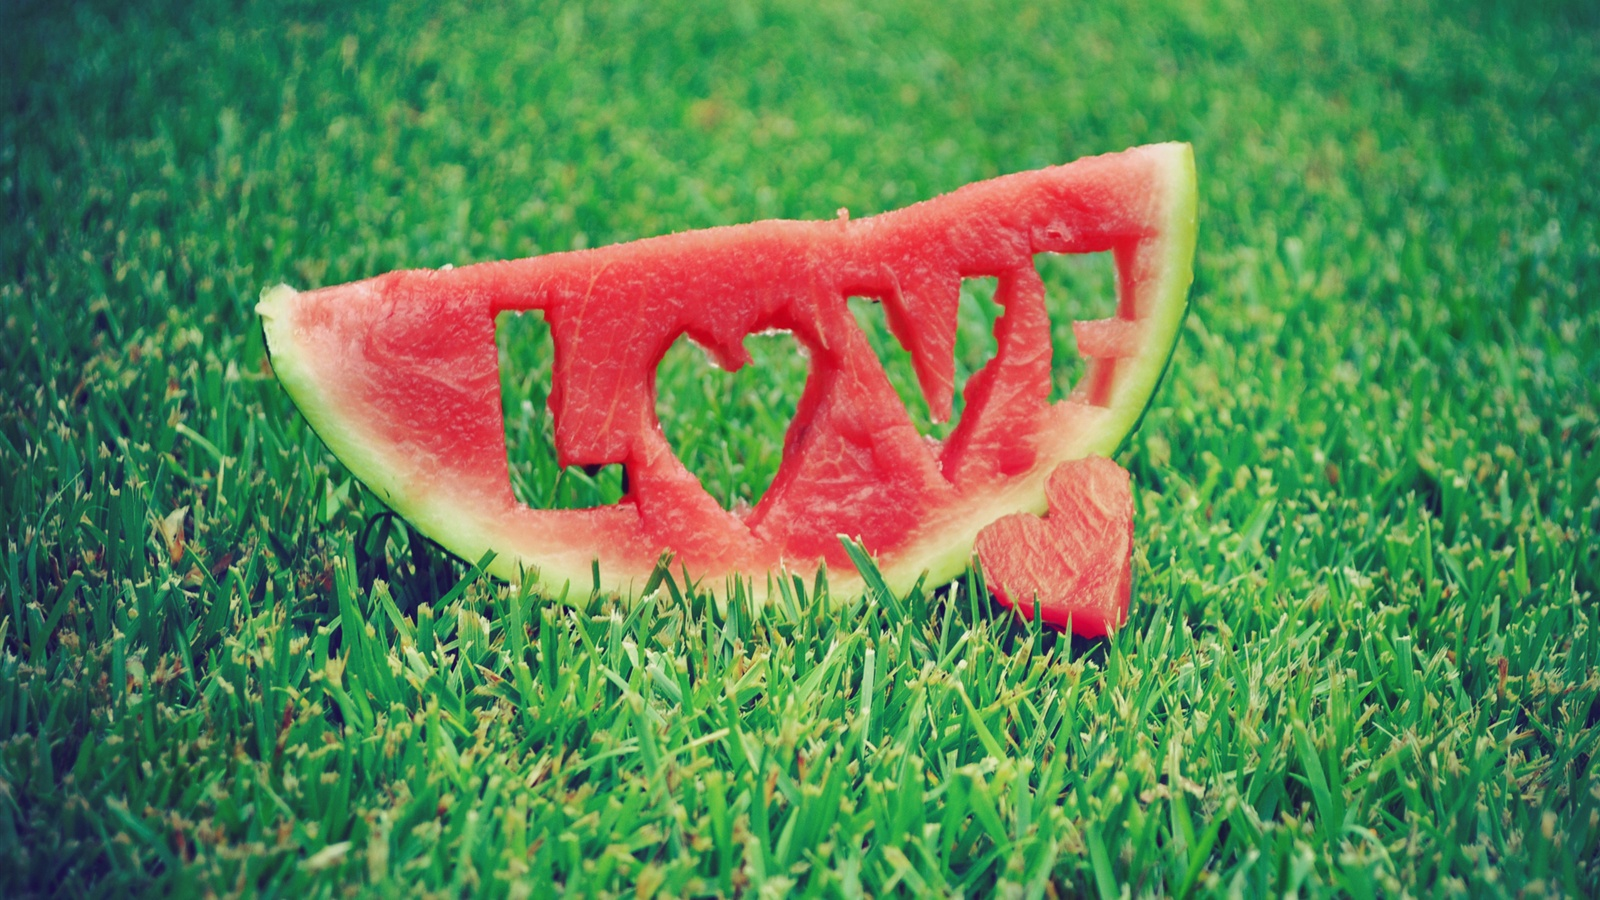 Watermelon Love Grass wallpaper - 1600x900